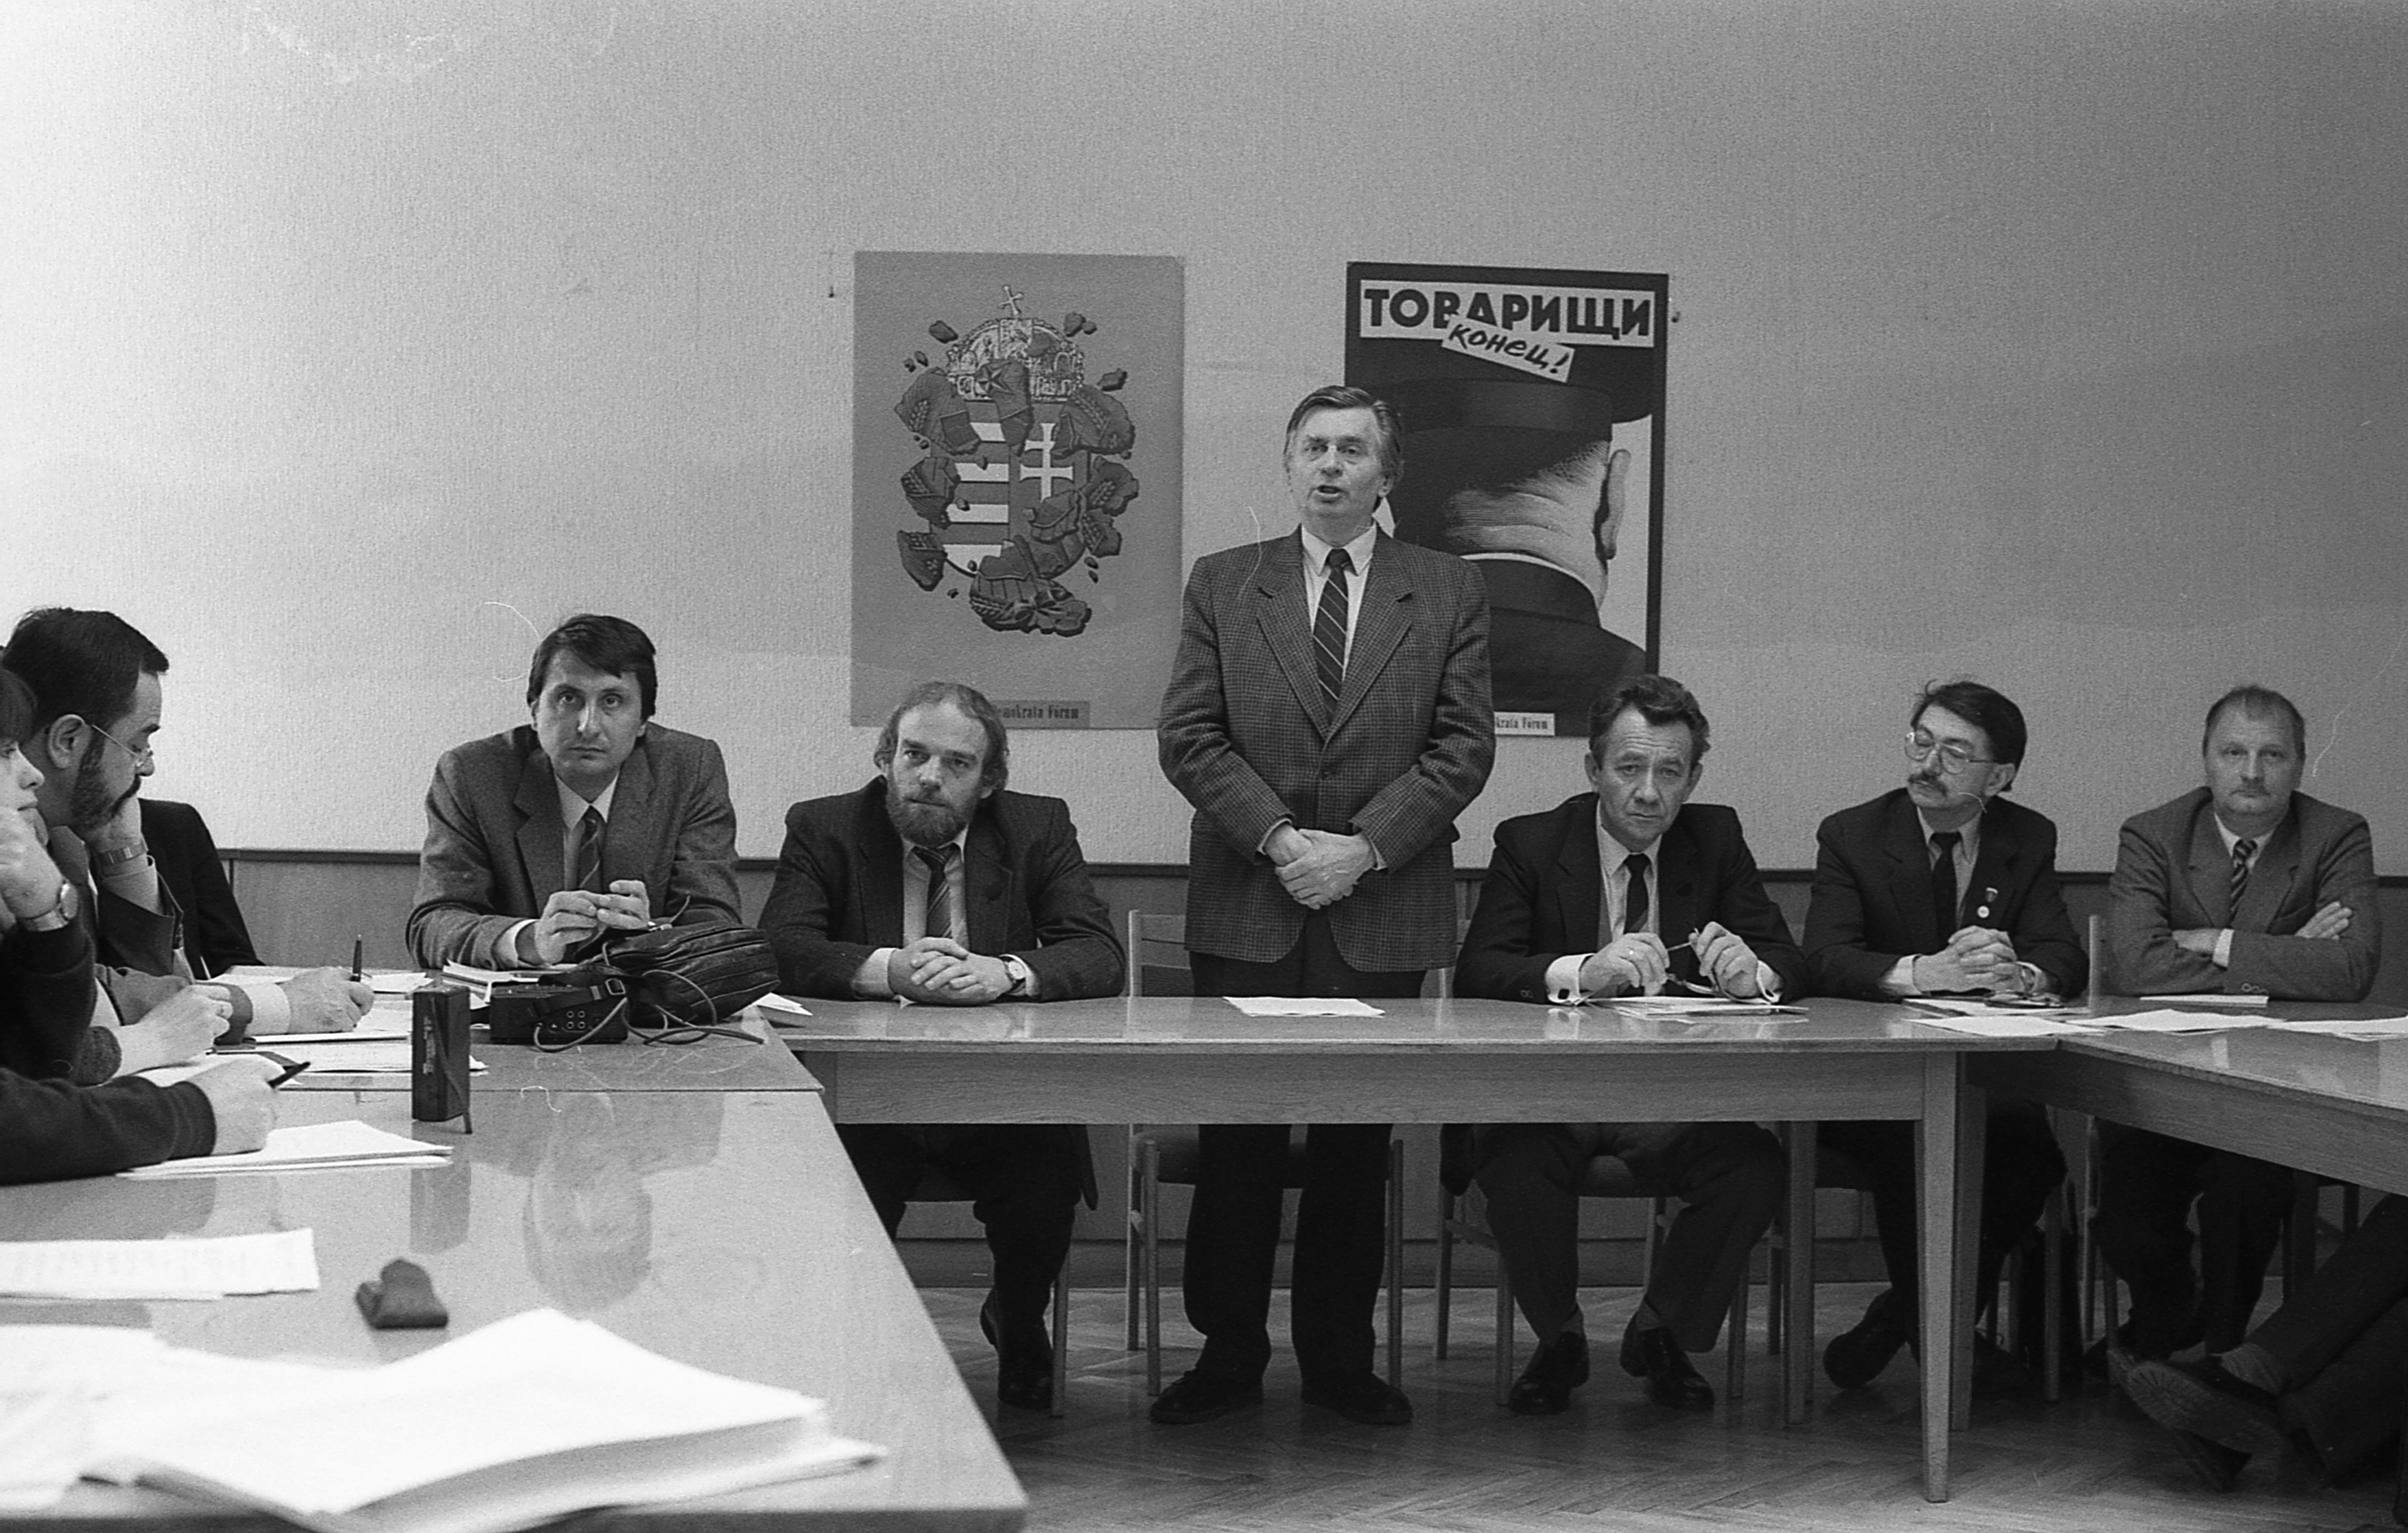 József Antall speaks in the headquarter of the Hungarian Democratic Forum, 1990.